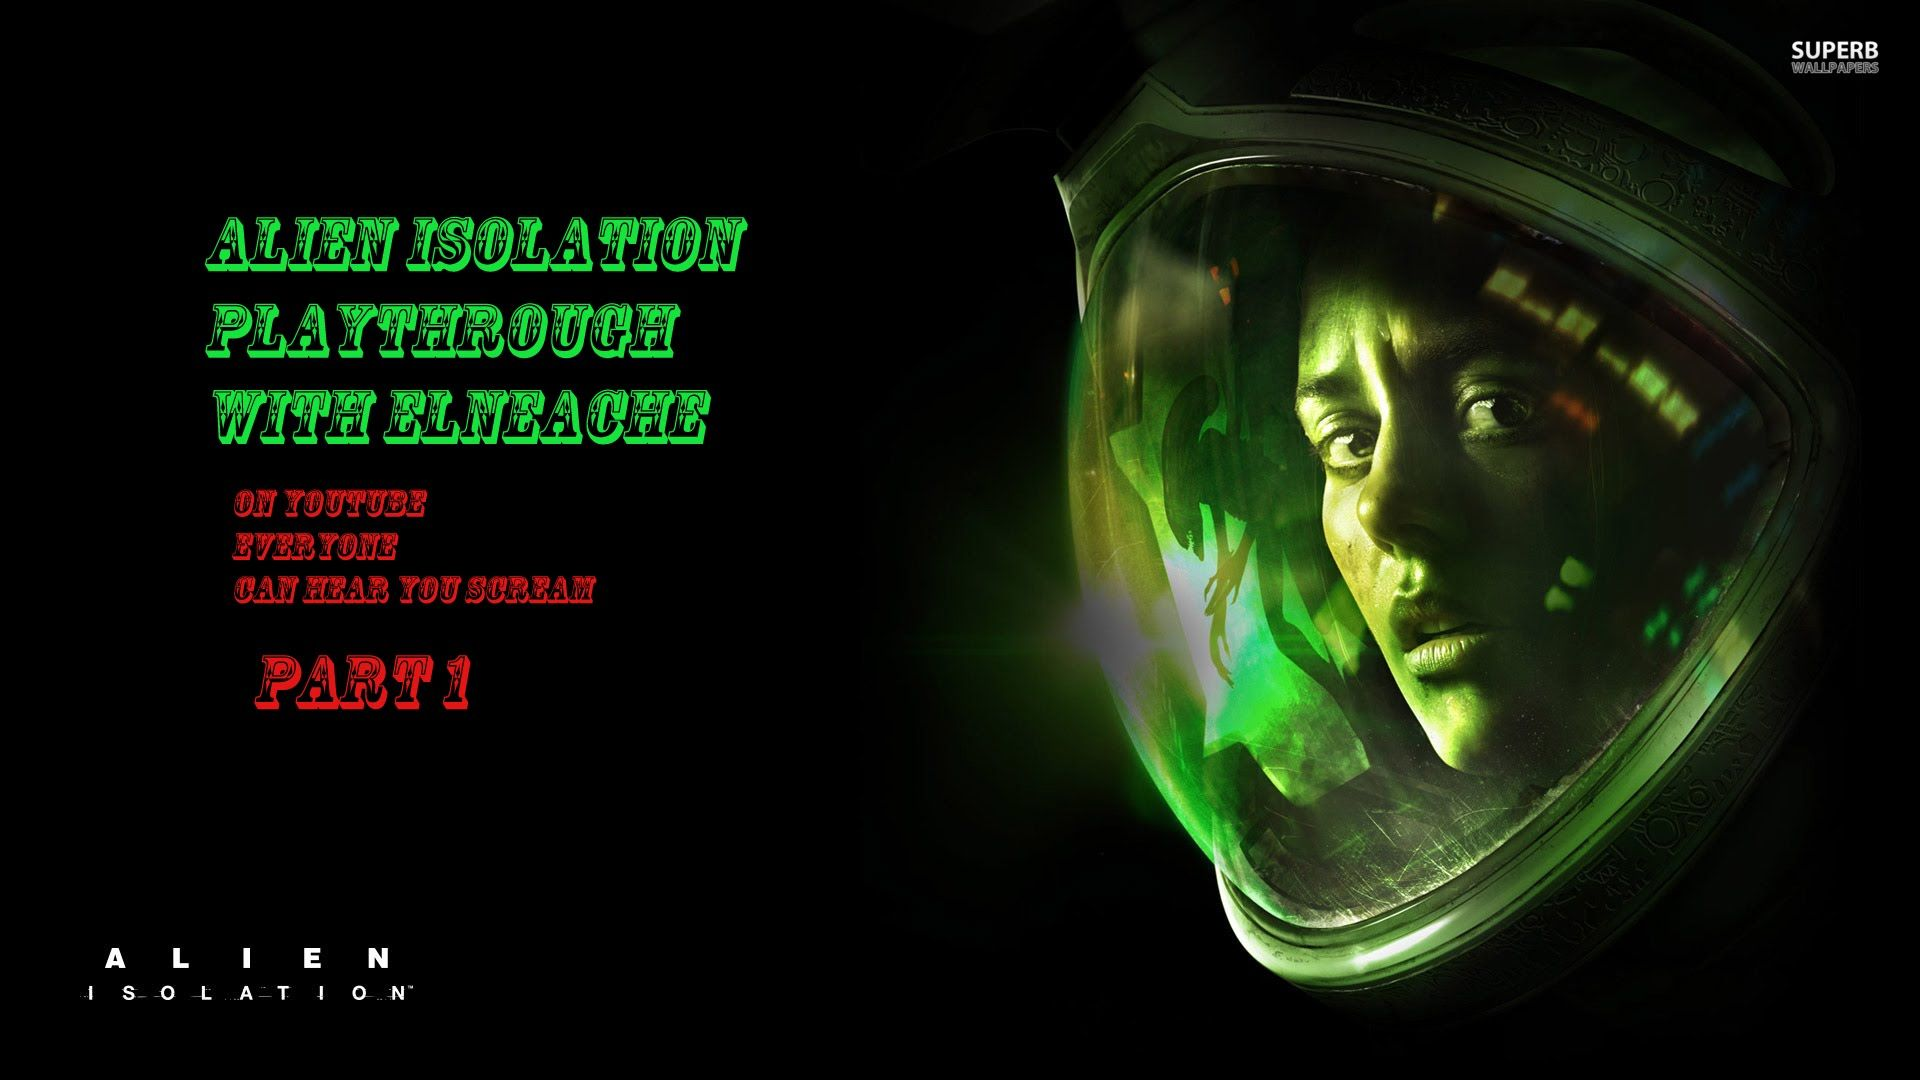 Alien Isolation Playthrough Part 1 with Elneache and reaction Cam